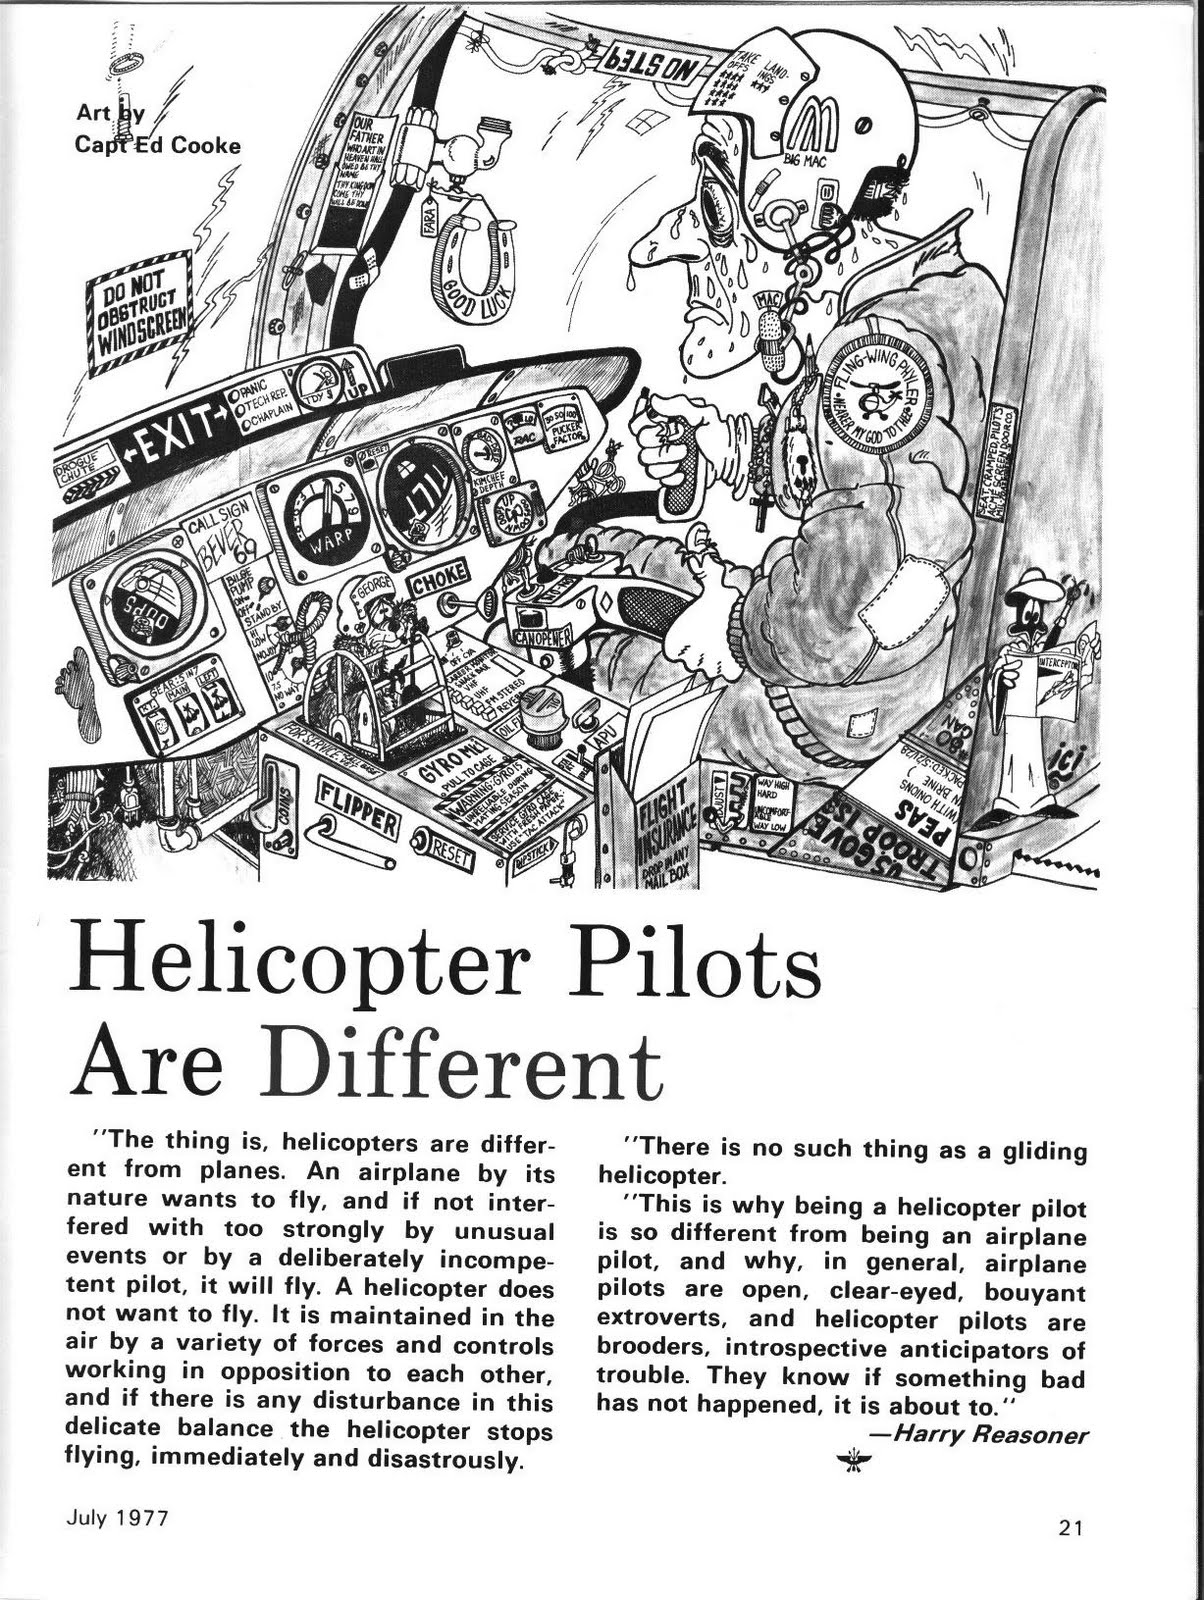 becoming an army helicopter pilot with 2010 01 01 Archive on Aac Requirements moreover 76777748 in addition Word On The Street AHSAFA American Helicopter Services Aerial Firefighting Association besides 2010 01 01 archive in addition Jose Alejandro Cruz Montes.